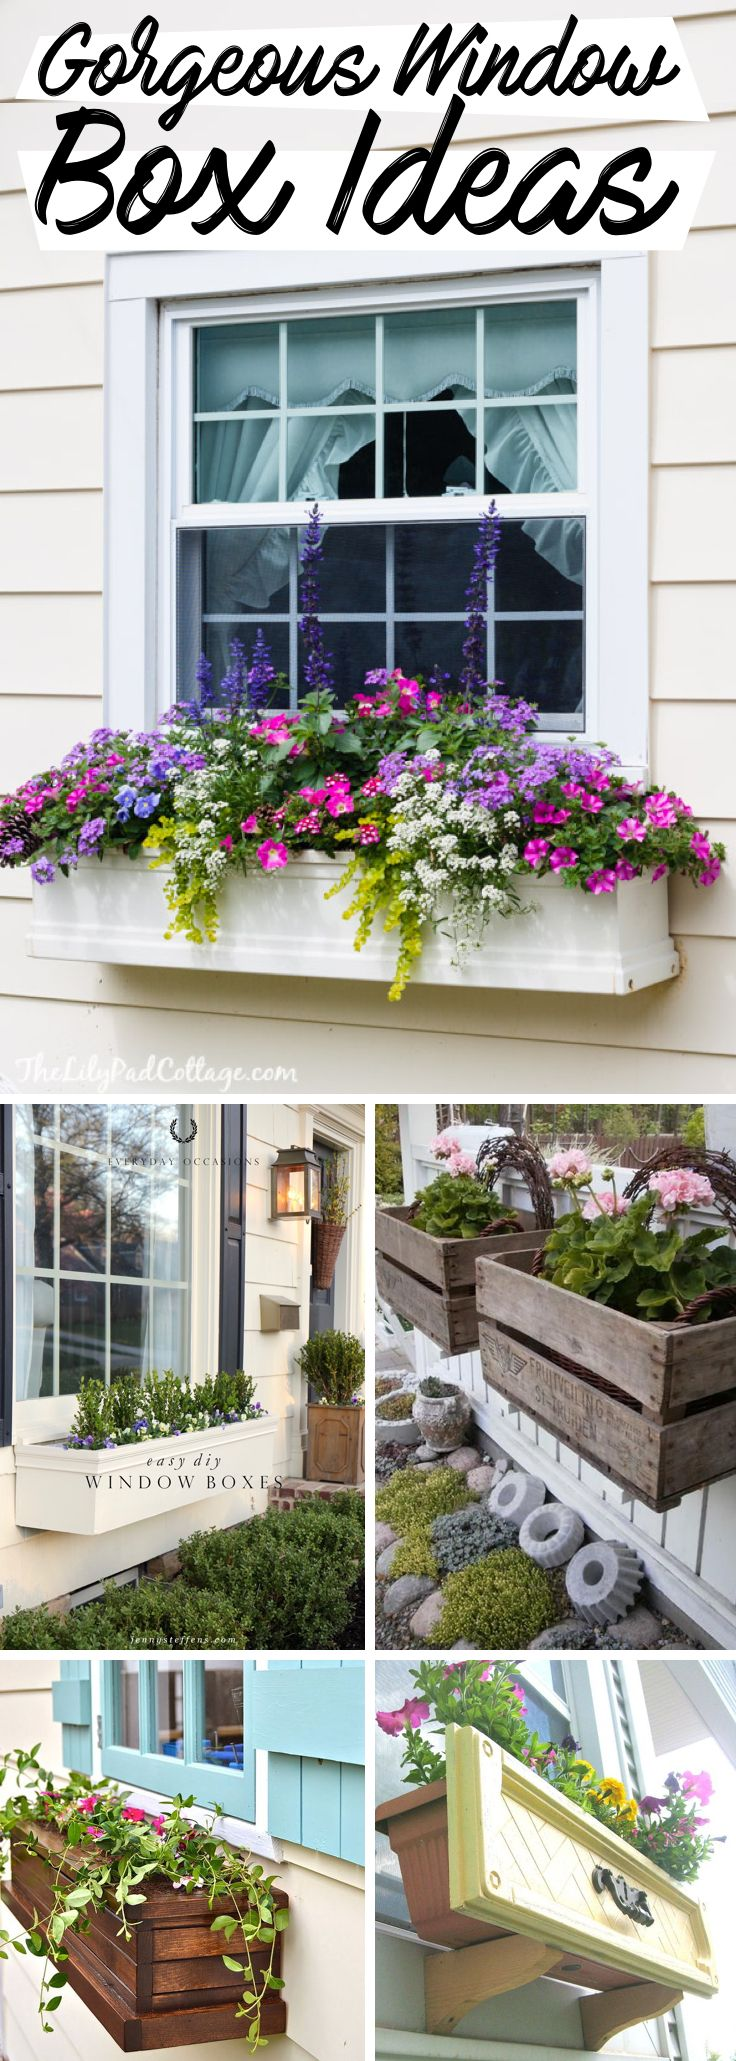 20 Window Box Ideas Adding Floral Magnificence To